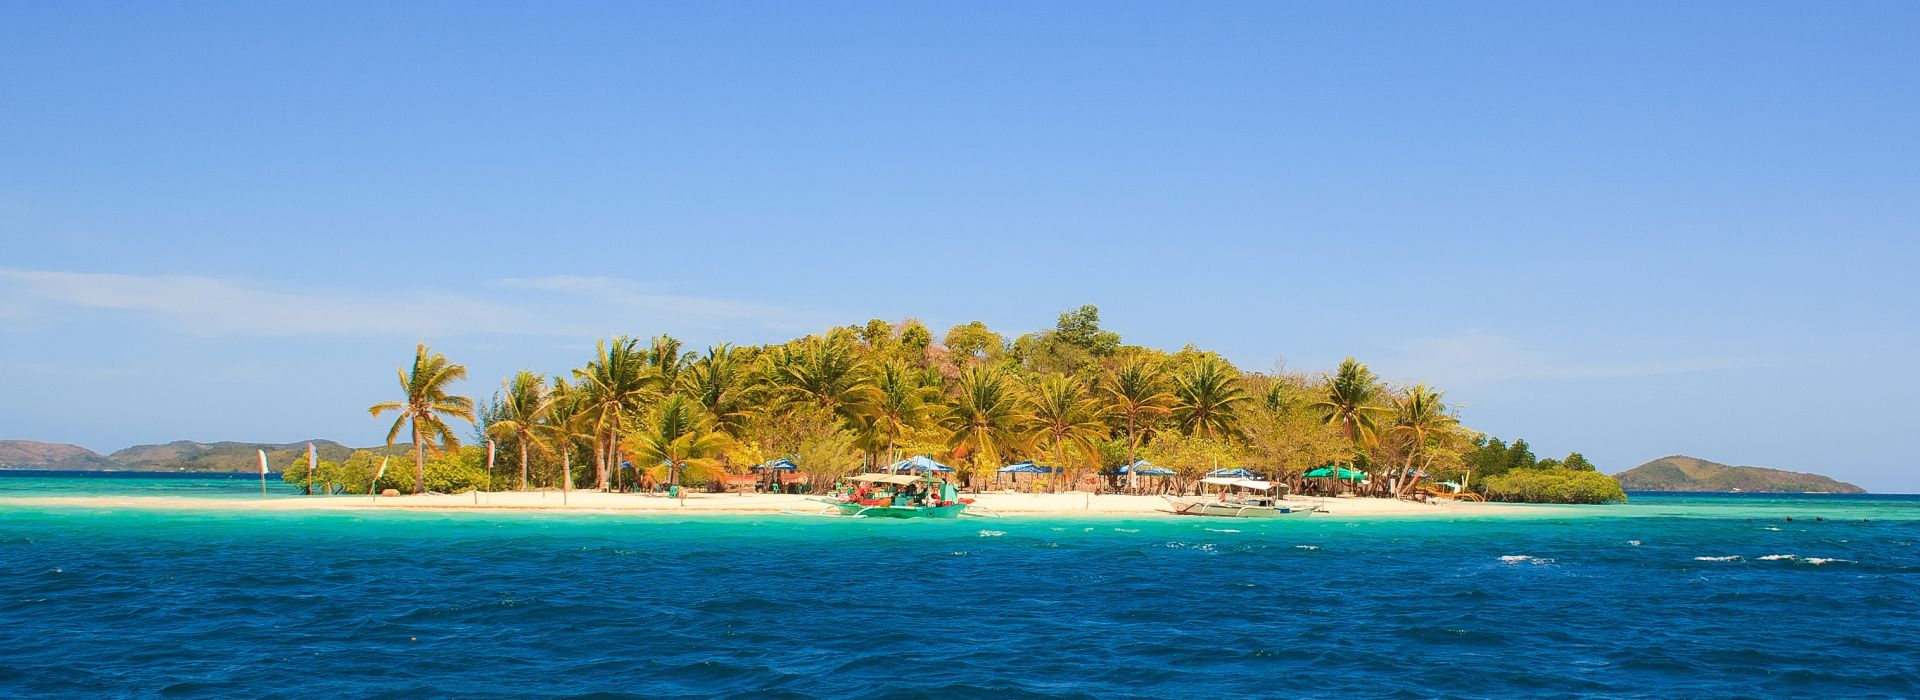 Boat tours, water sports and marine wildlife in Philippines